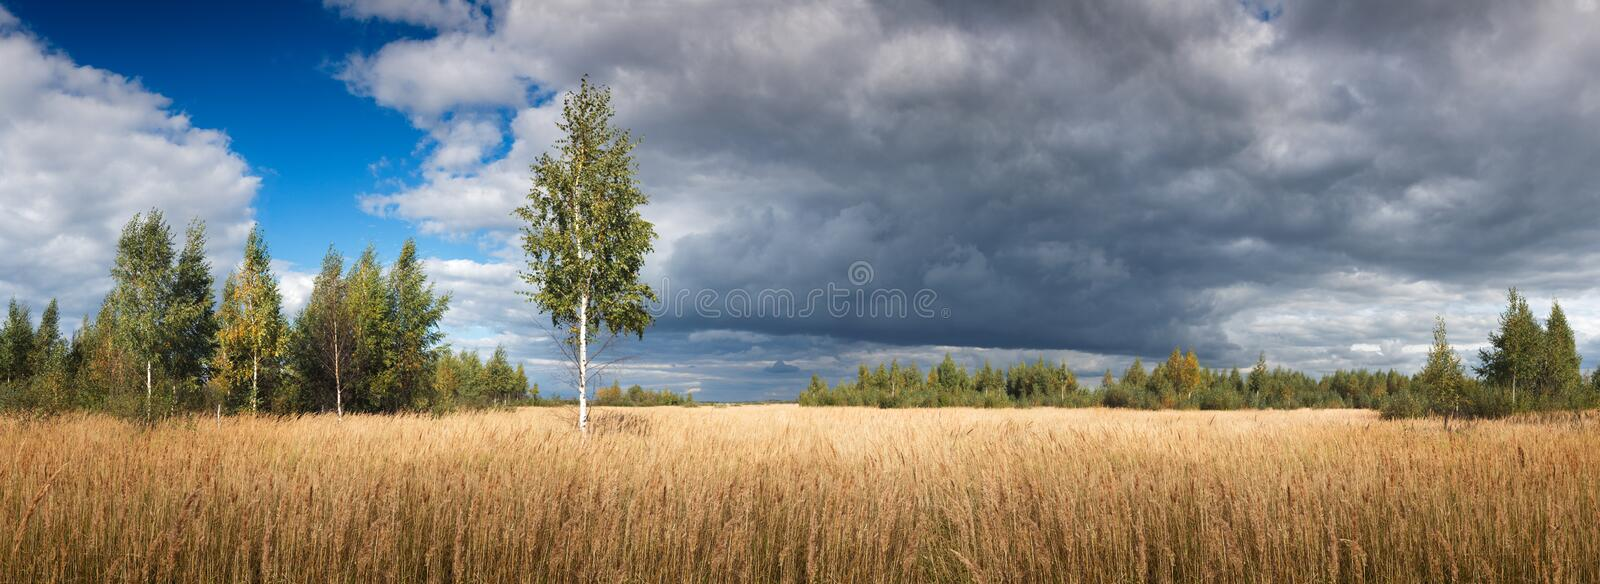 Landscape view with wide bright yellow wild field with high grass with a single tree forest Dramatic blue sky with white dark stock photos